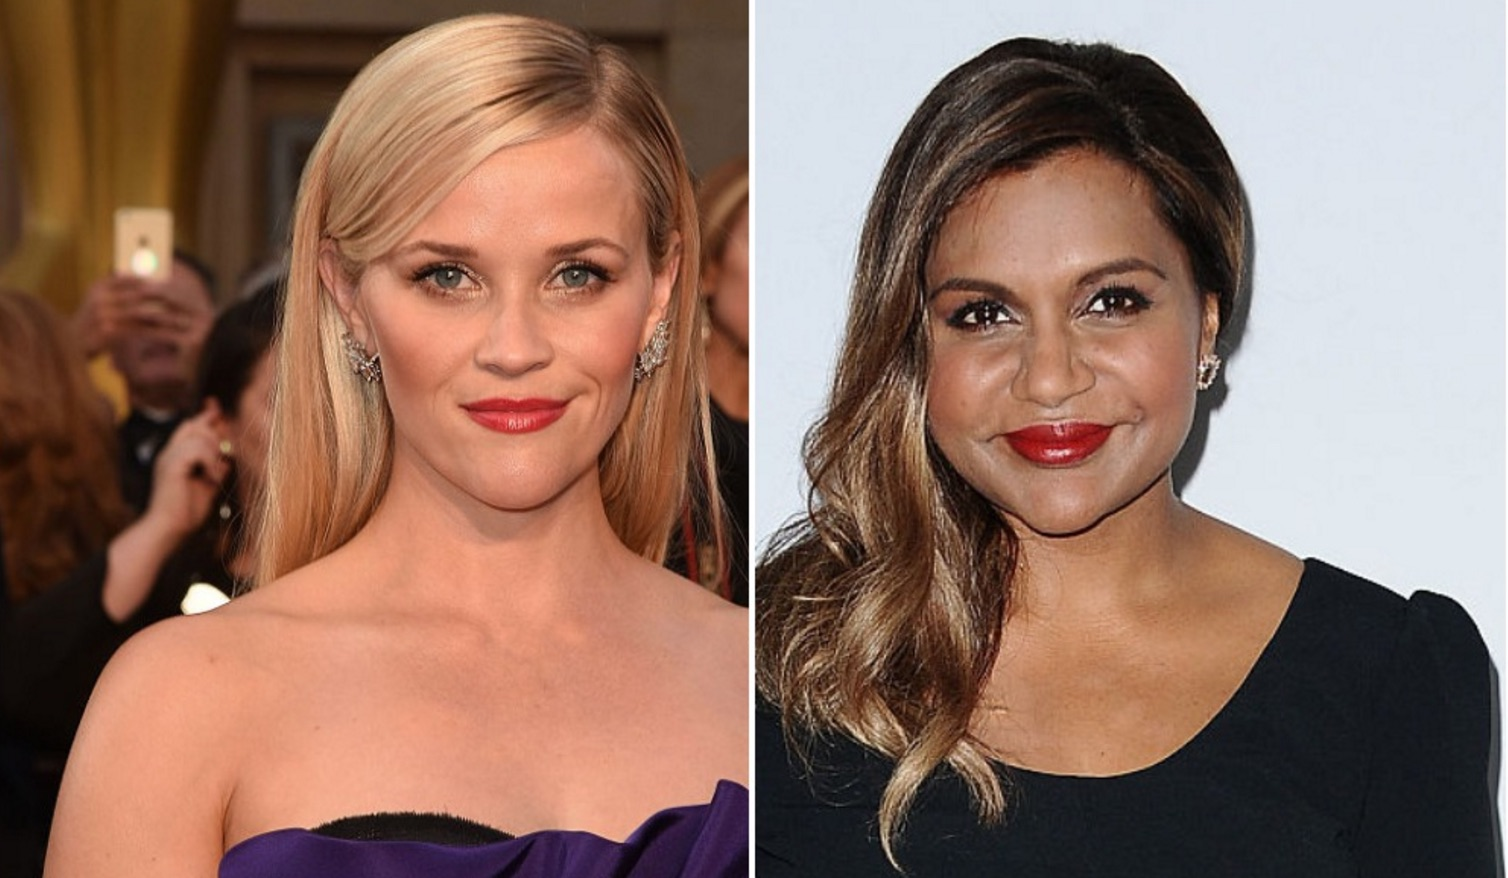 Reese Witherspoon AND Mindy Kaling might join Oprah in this Disney movie and we cannot handle our excitement